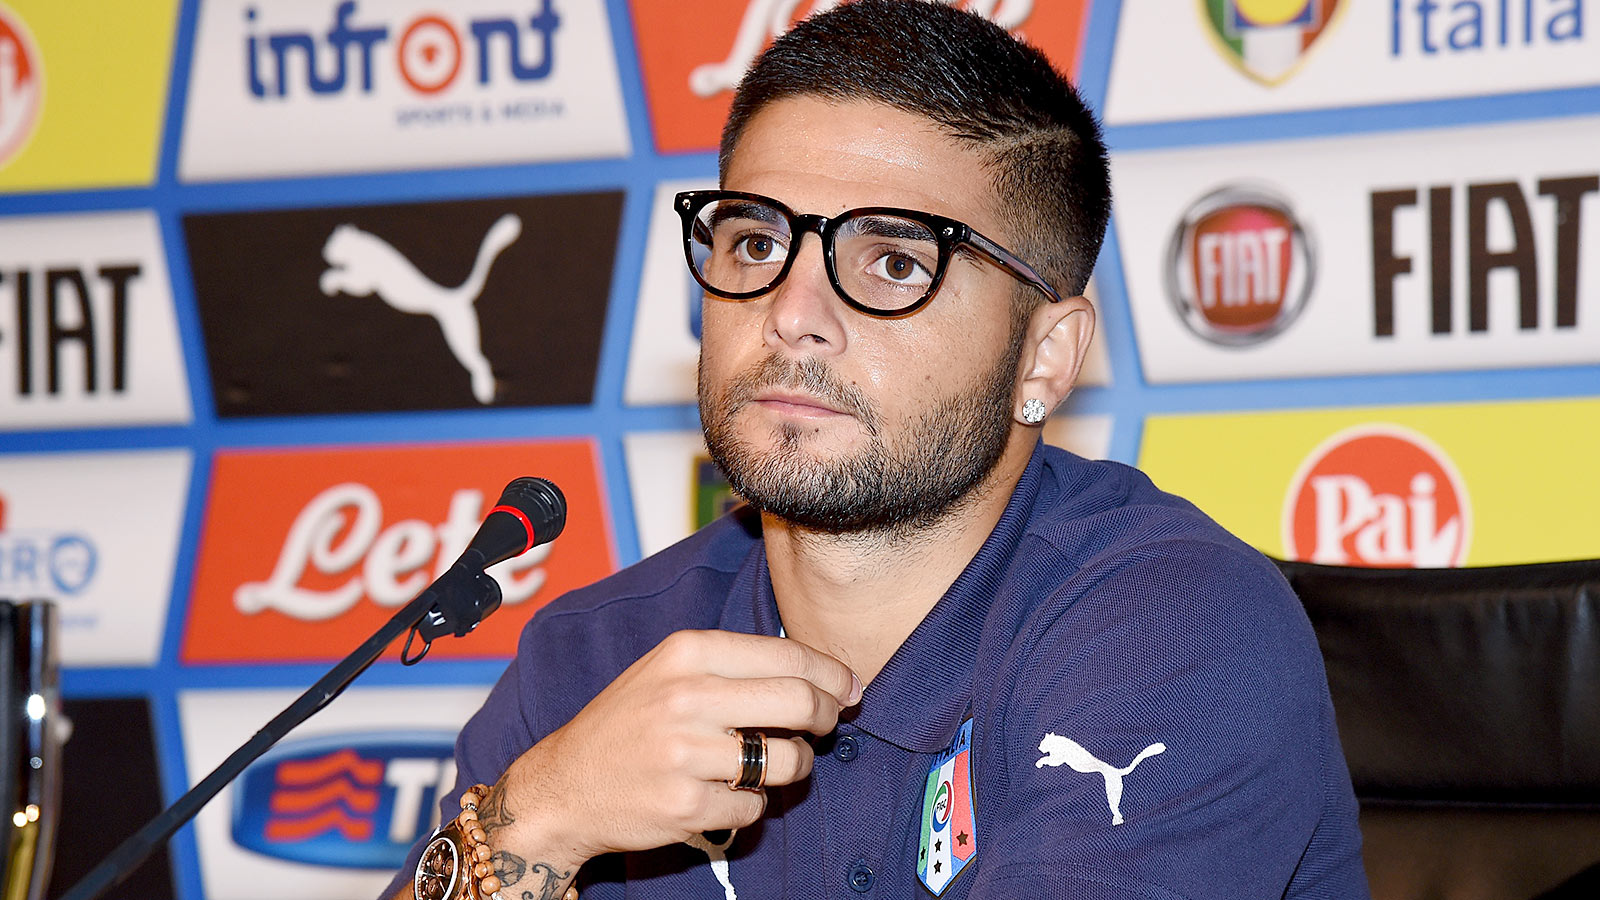 Injured Insigne out of Italy squad, Bonaventura called up